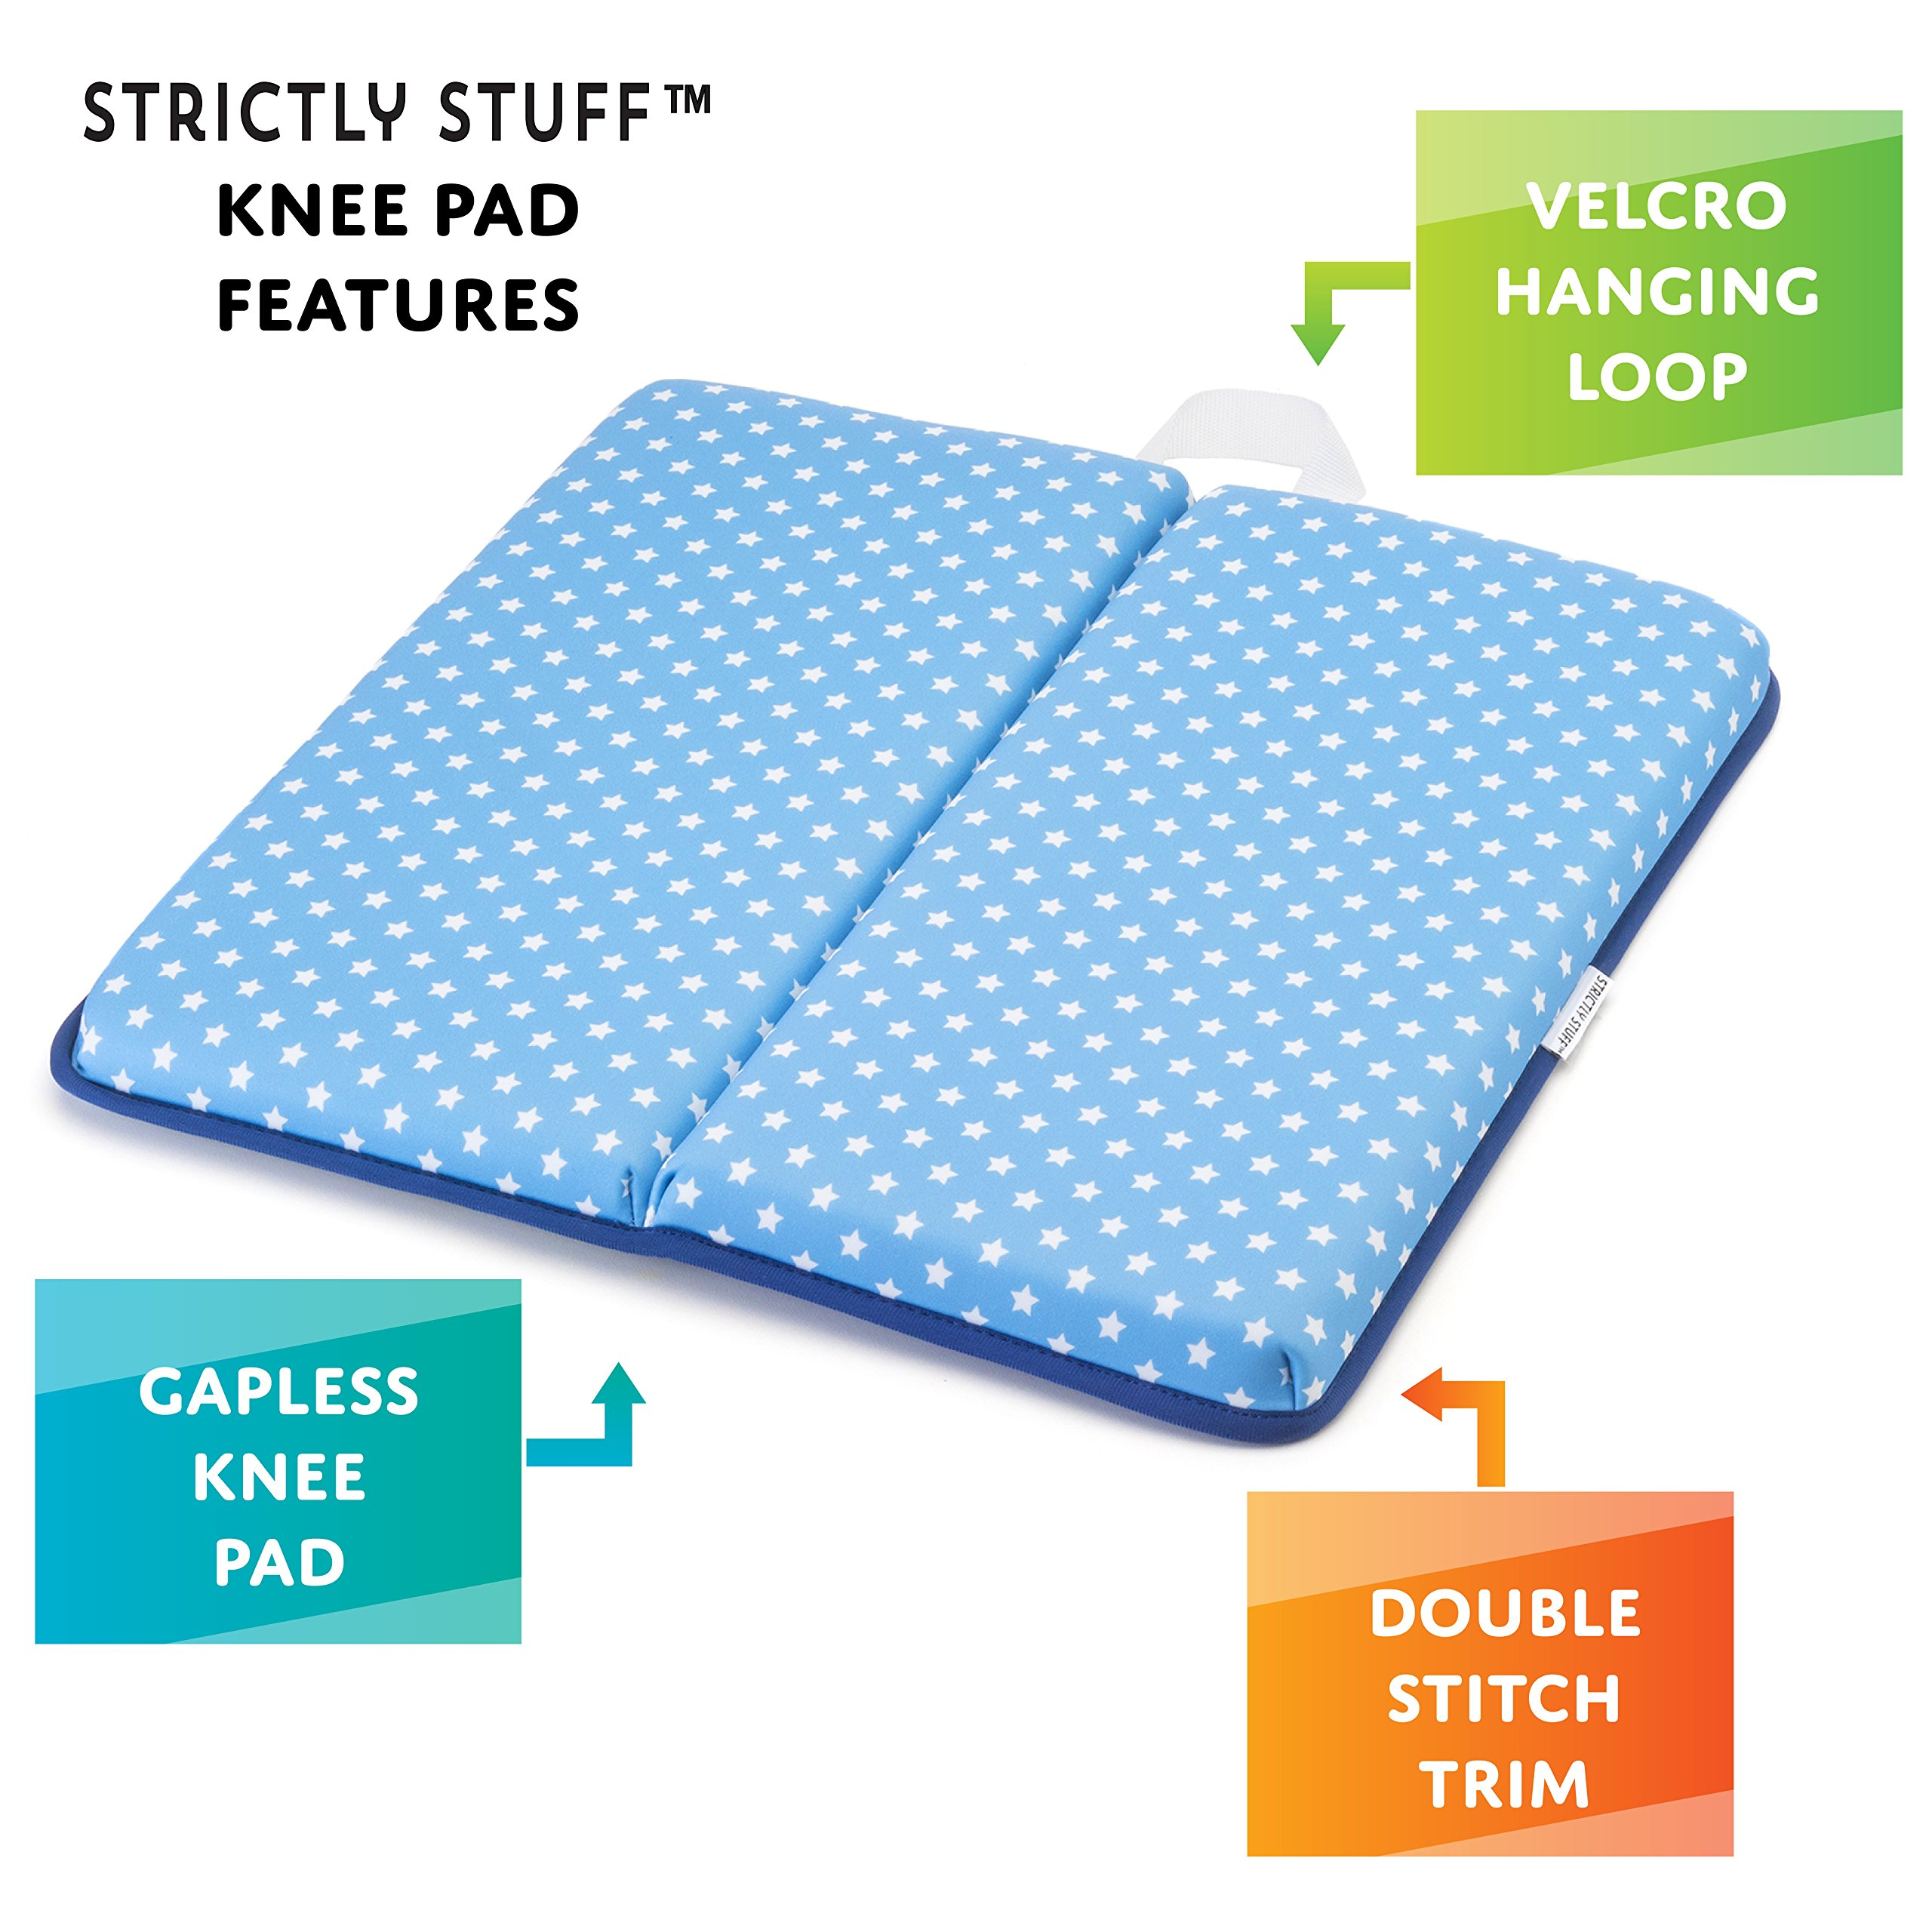 Strictly Stuff Baby Bath Kneeler and Elbow Pad (Pink). Thick, Soft Knee Padding. Durable Neoprene Material and Design. Non-Slip Backing with Suction Cups. Fits All tubs. Three Great Color Patterns. by Strictly Stuff (Image #7)